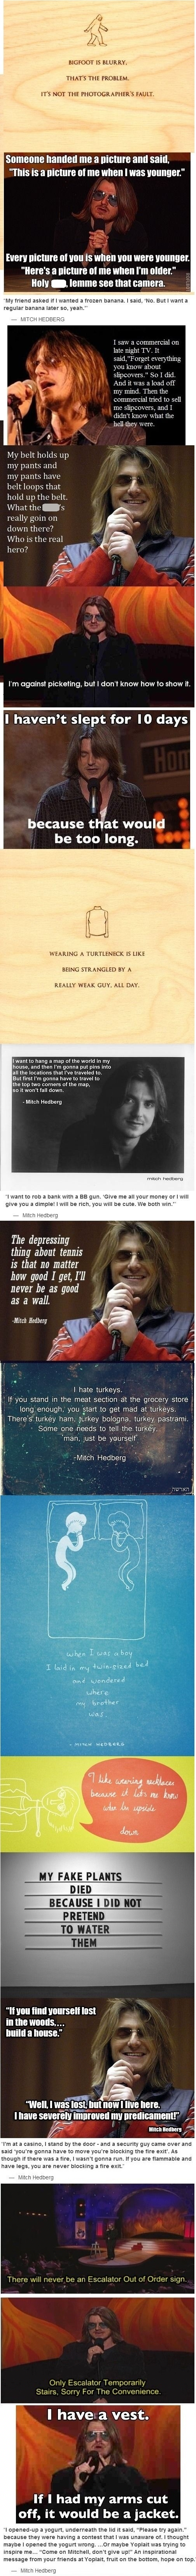 Mitch Hedberg. King of the one-liner.